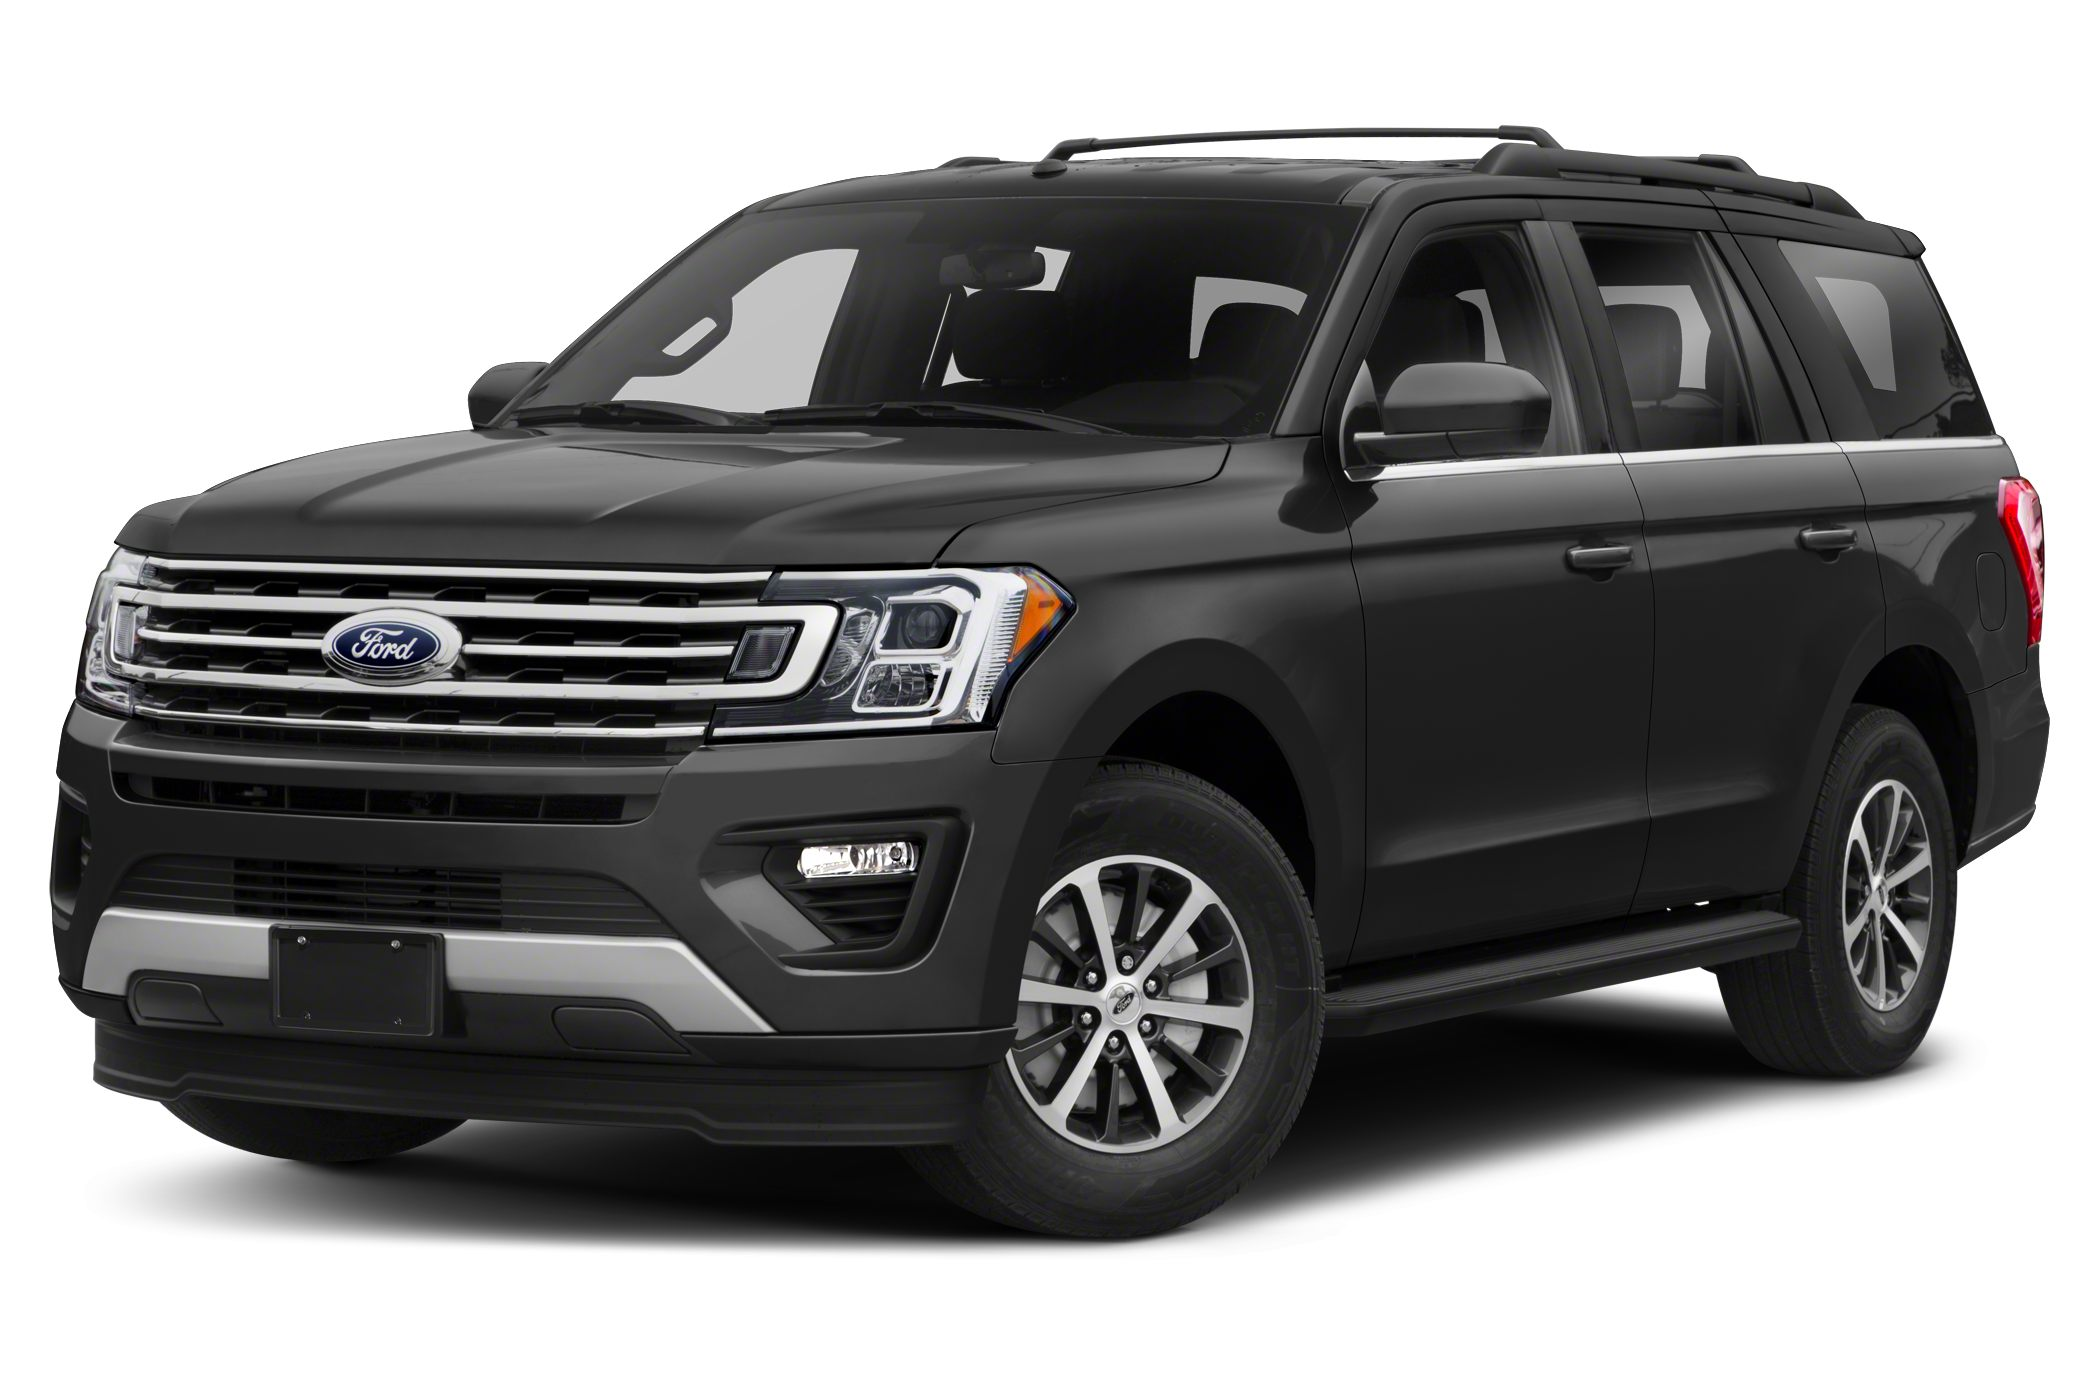 new 2018 ford expedition limitedsee details